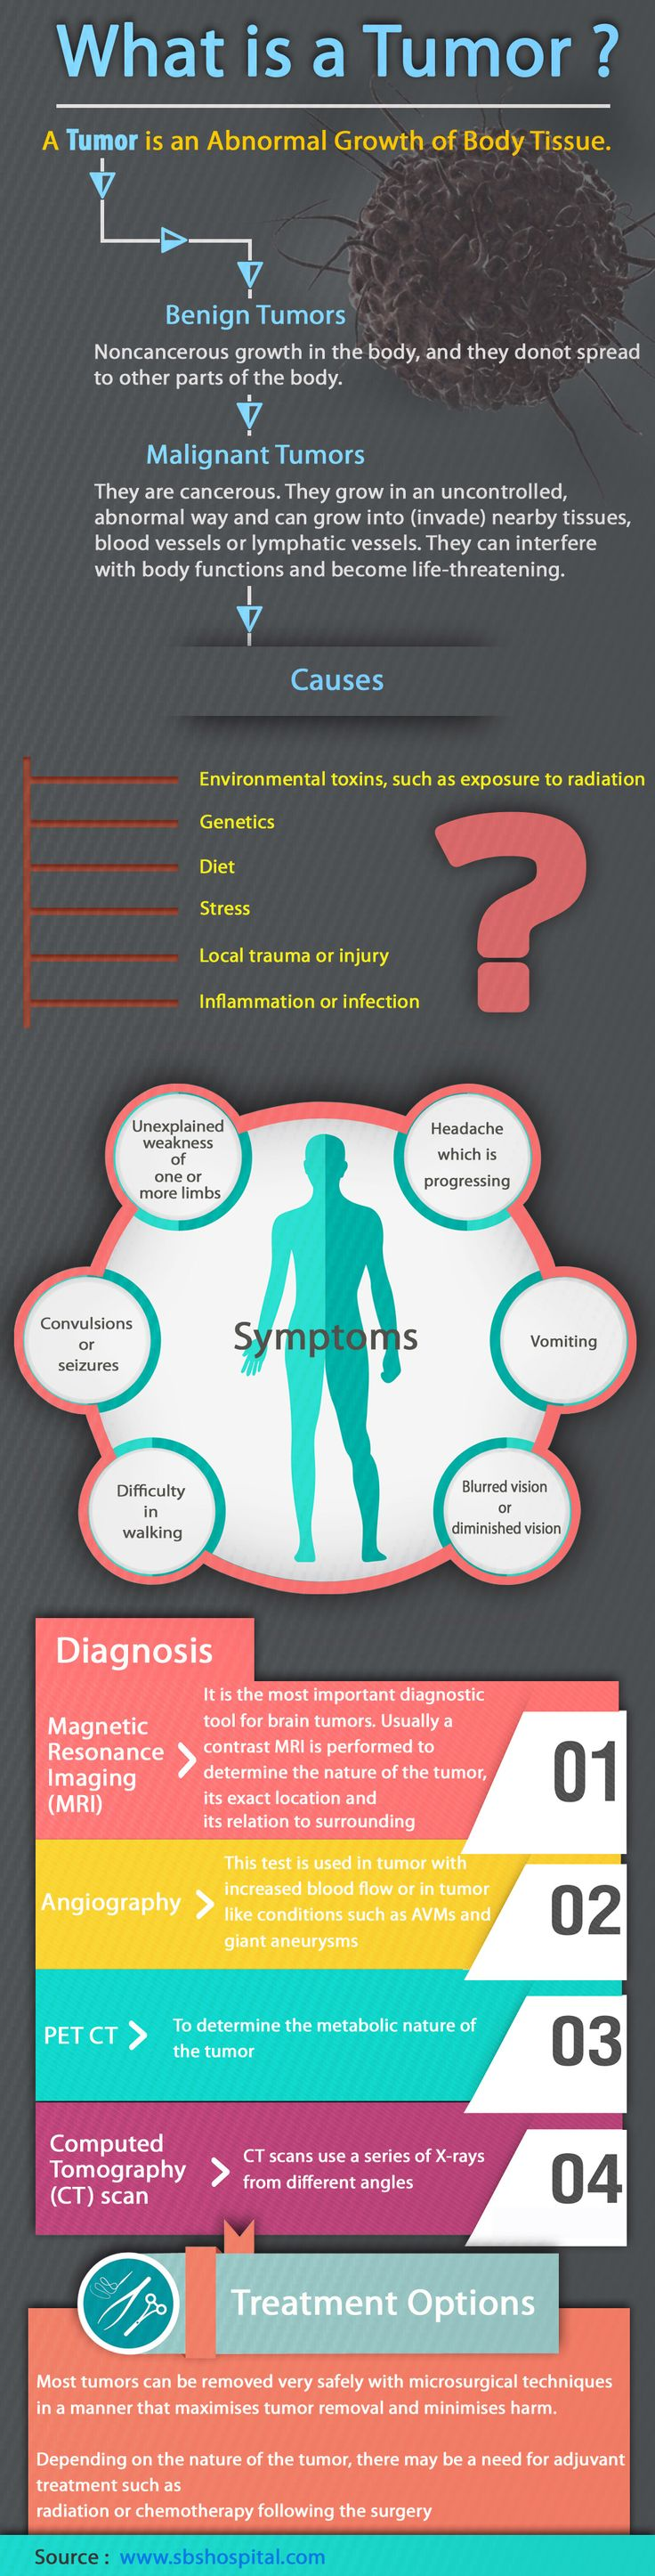 Infographic: What is a Brain Tumor - Sita Bhateja Specialty Hospitals. Brain Tumor is an abnormal growth of cells within the brain. They are often deadly and need immediate attention and further treatment. Read to know about various types, causes, symptoms, diagnosis and treatment options for brain tumors.